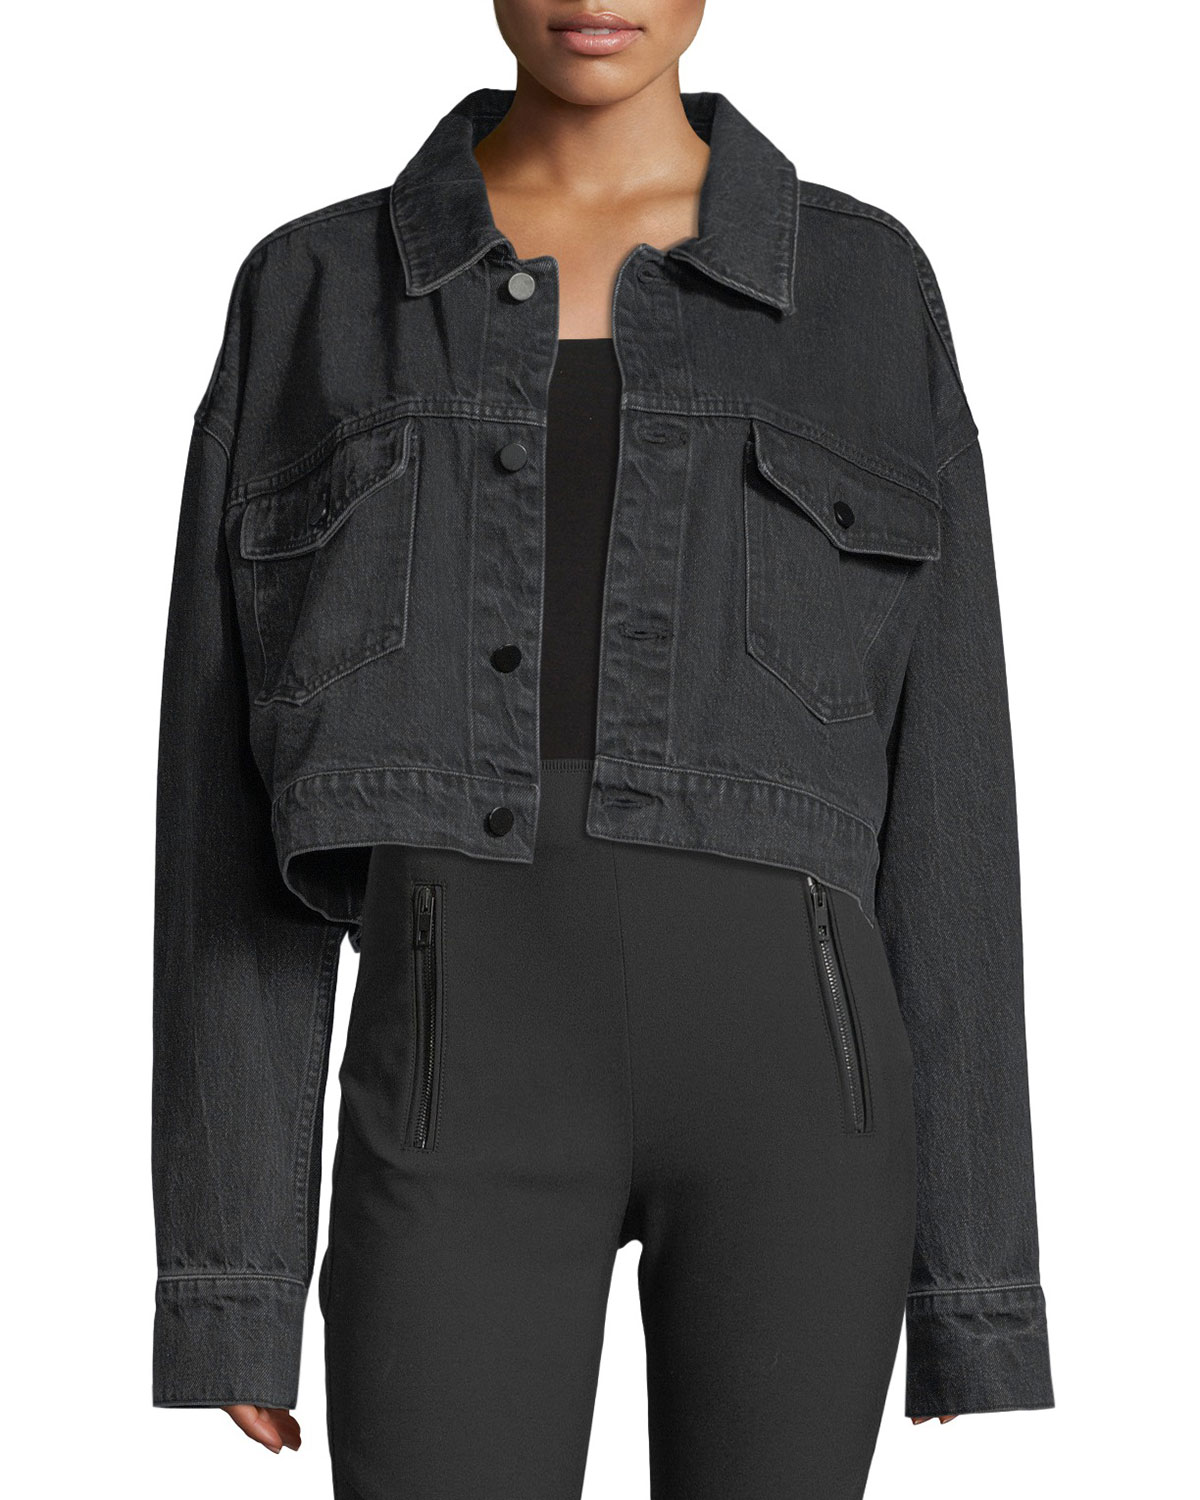 T by Alexander Wang Cropped Oversized Denim Jacket  b0c1a6d627b6